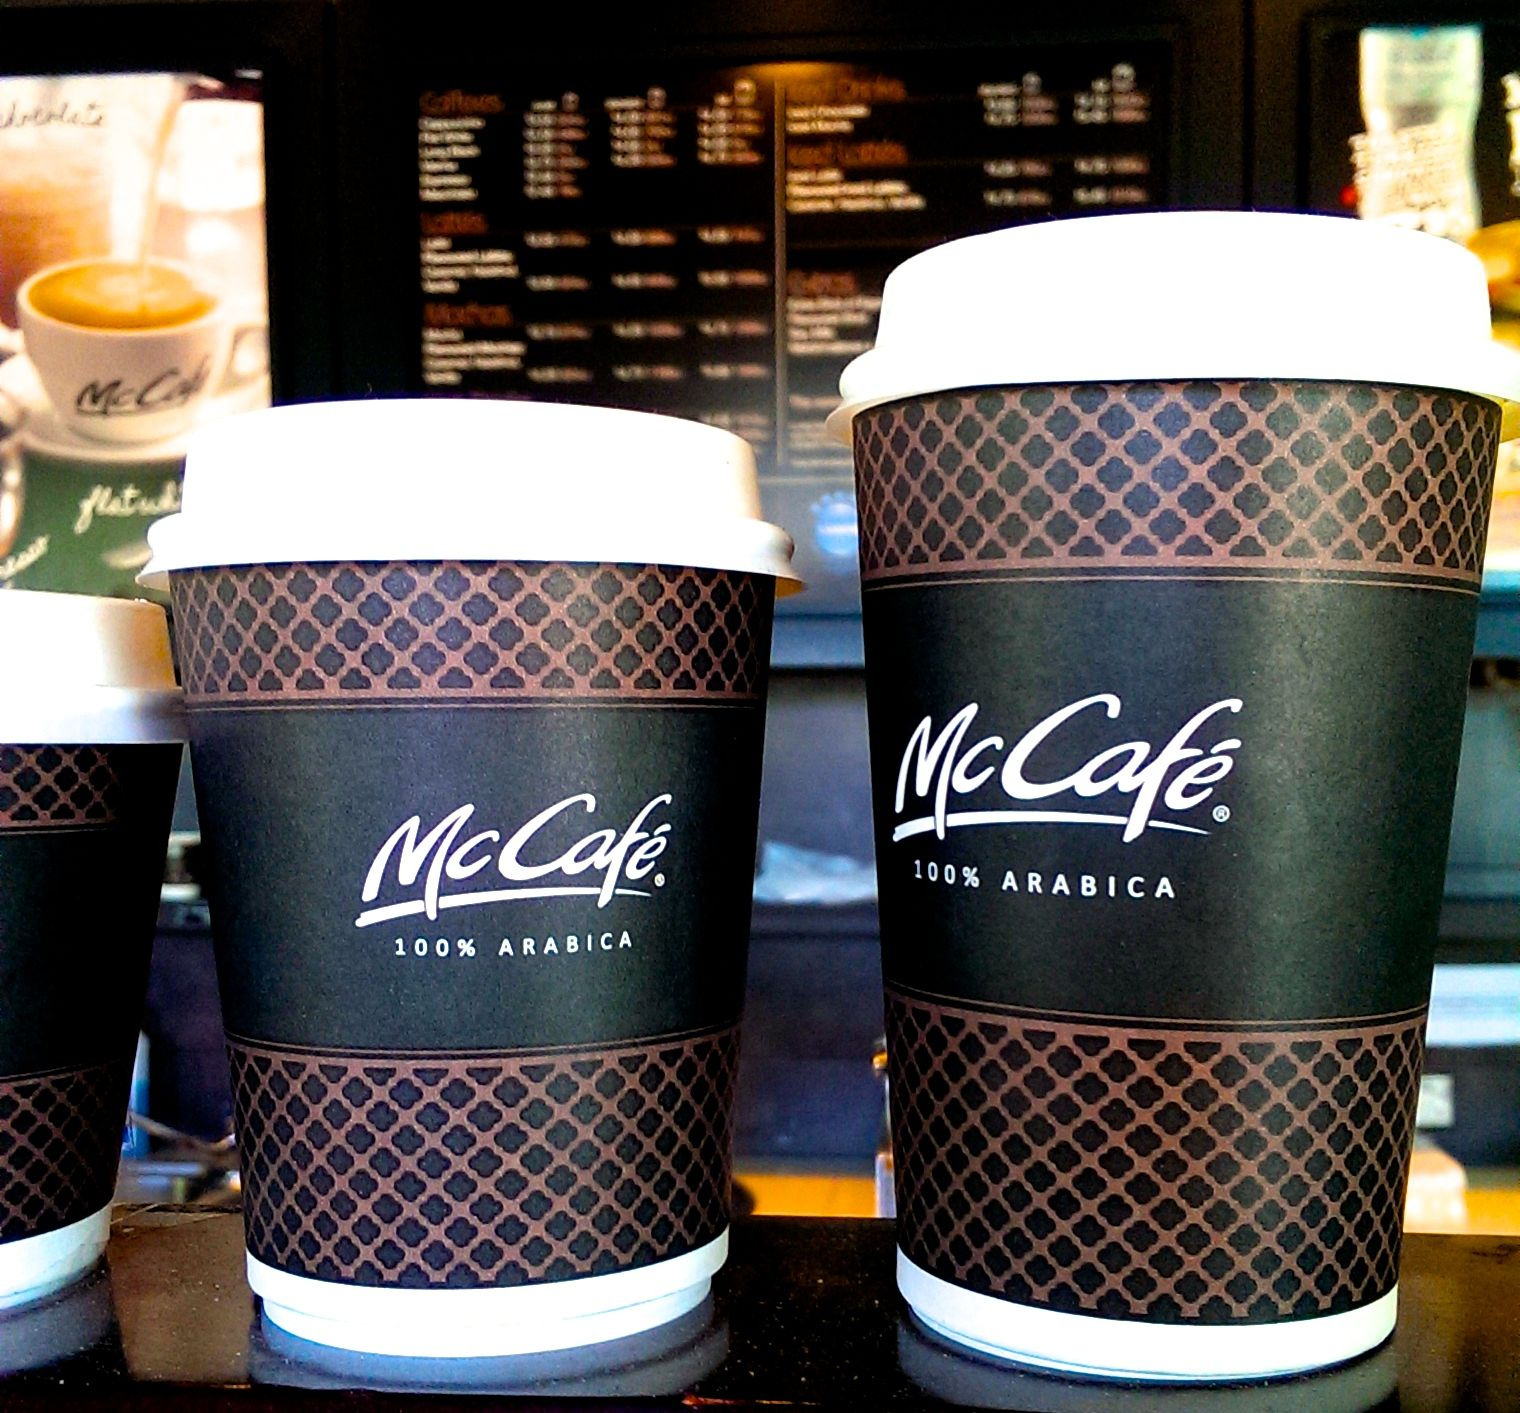 The Story Of Mccafe When Competing On Price Can Fail